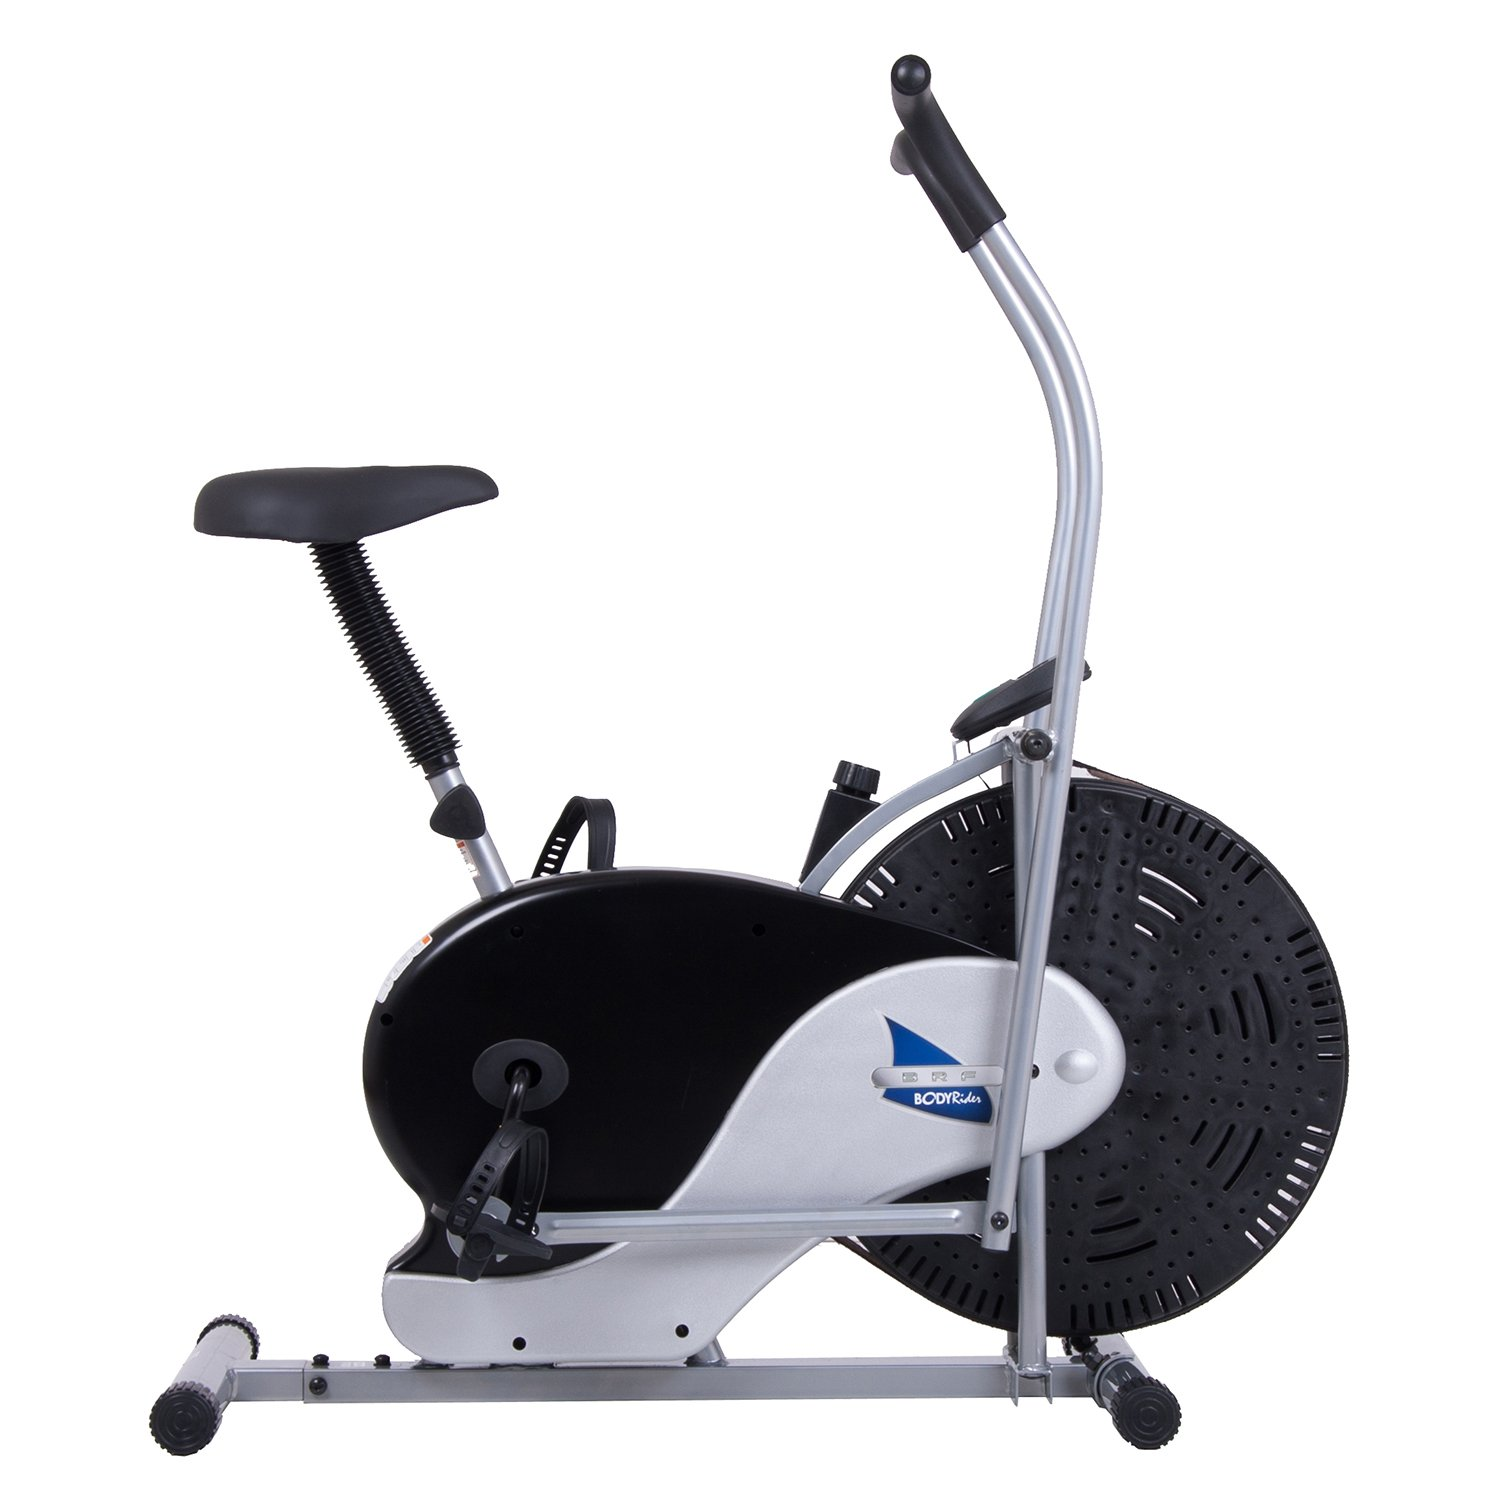 Body Rider Exercise Upright Fan Bike (with UPDATED Softer Seat) Stationary Fitness/Adjustable Seat BRF700 by Body Rider (Image #7)